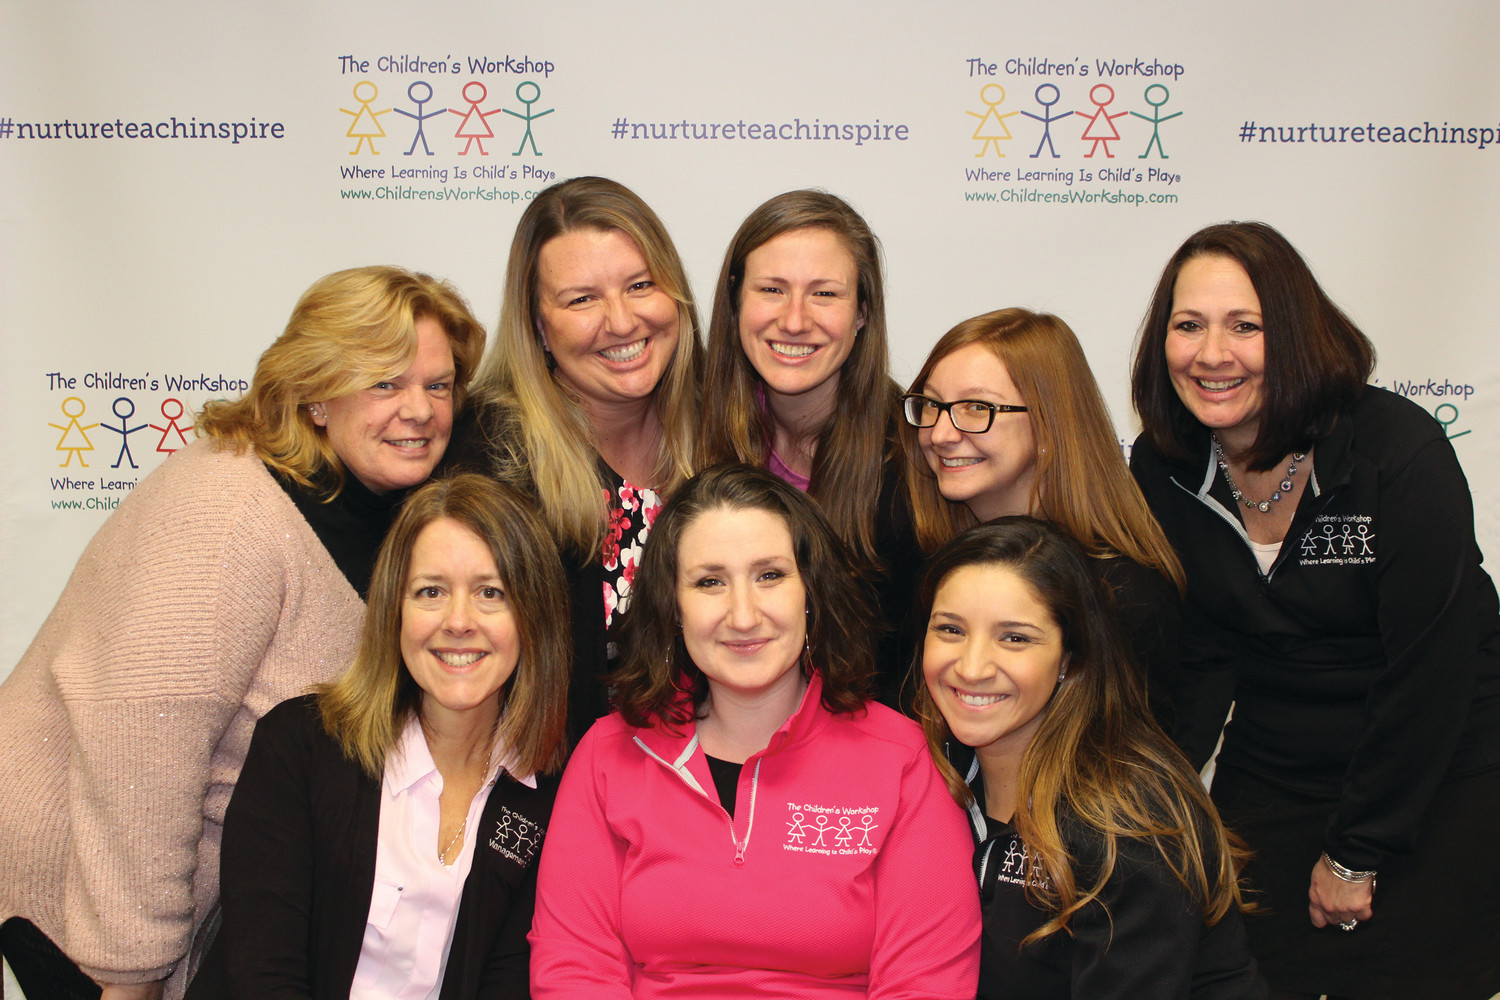 The Children's Workshop Team: Beth Lobdell, Nicole Chiello, Maggie Teller, Julie Boutwell, Tracey Martin-Turgeon, Marybeth Young, Bailey Kent, Sasha Brathwaite